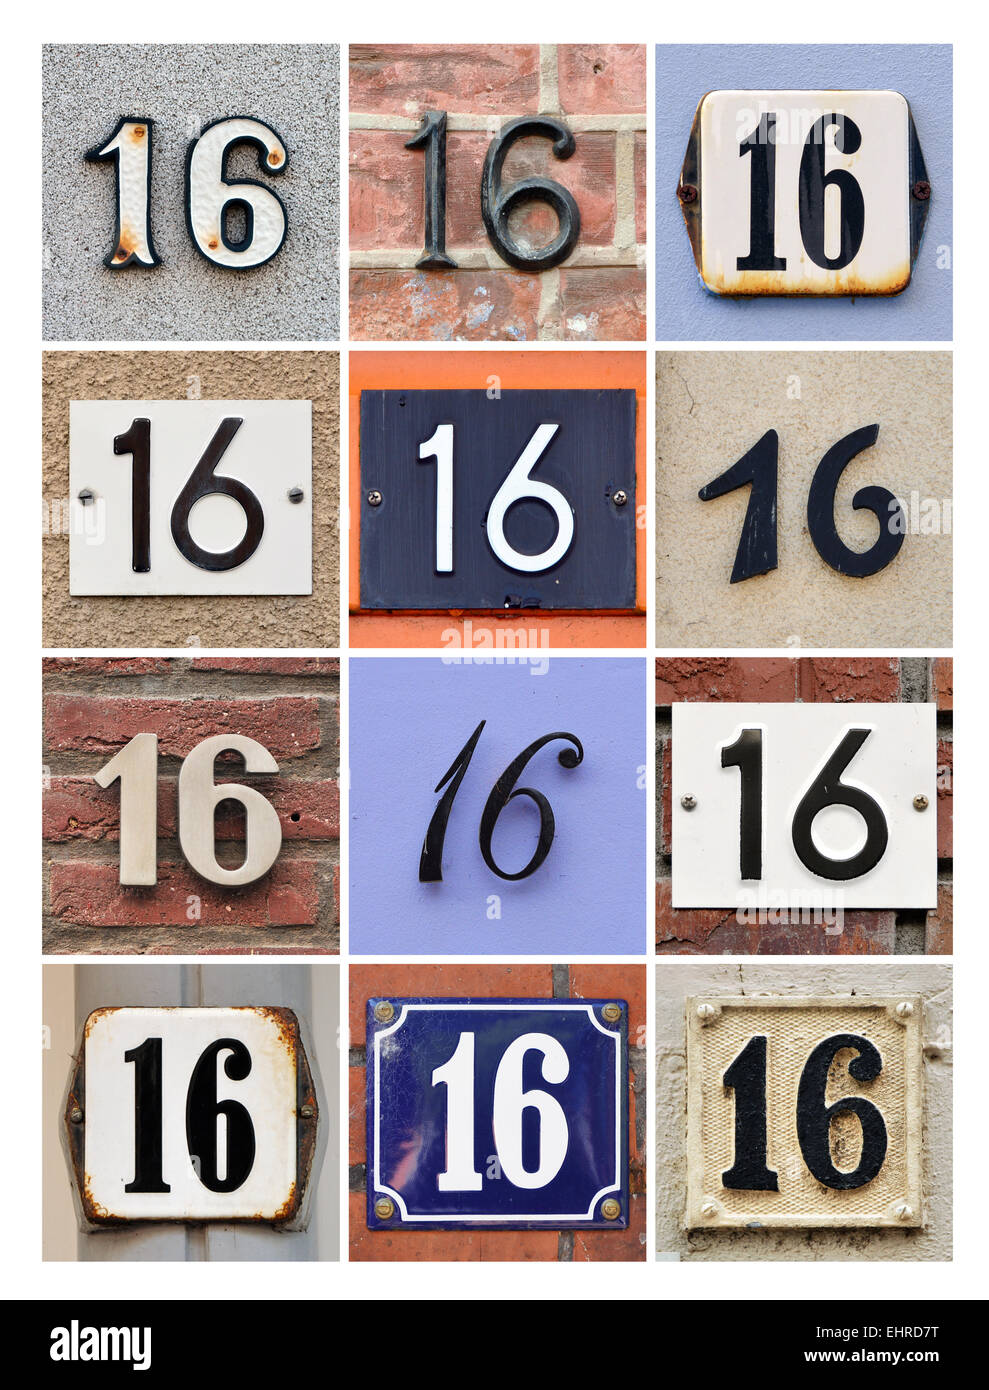 exceptional number 16 house #4: Number 16 - Collage of House Numbers Sixteen